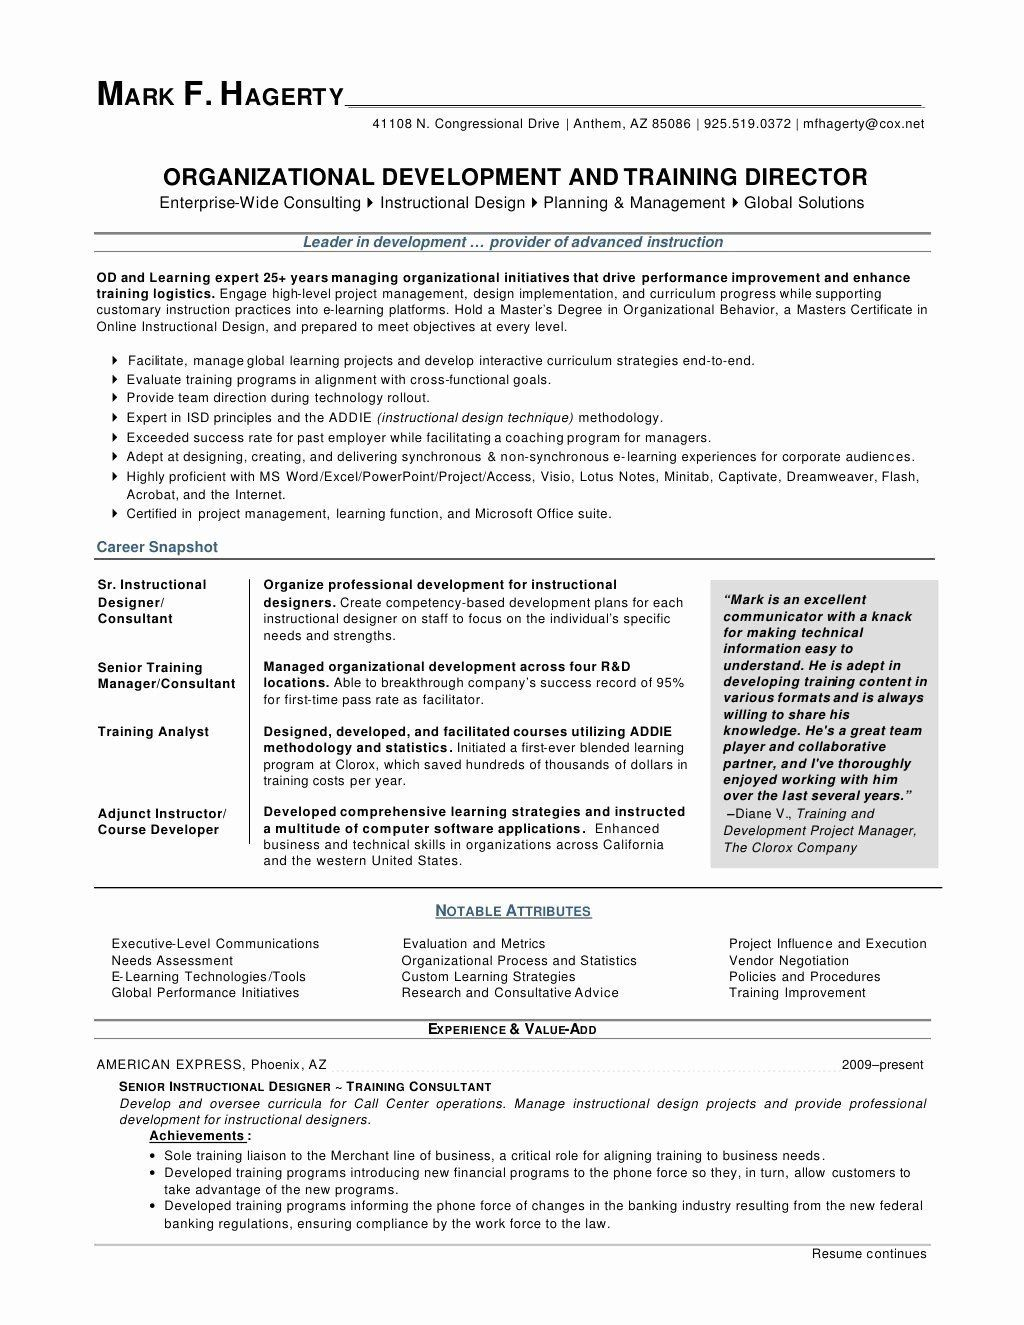 Good Interests To Put On Resume Awesome Skills To Add To Resume Professional Work Skills For Resume In 2020 Project Manager Resume Manager Resume Resume Examples